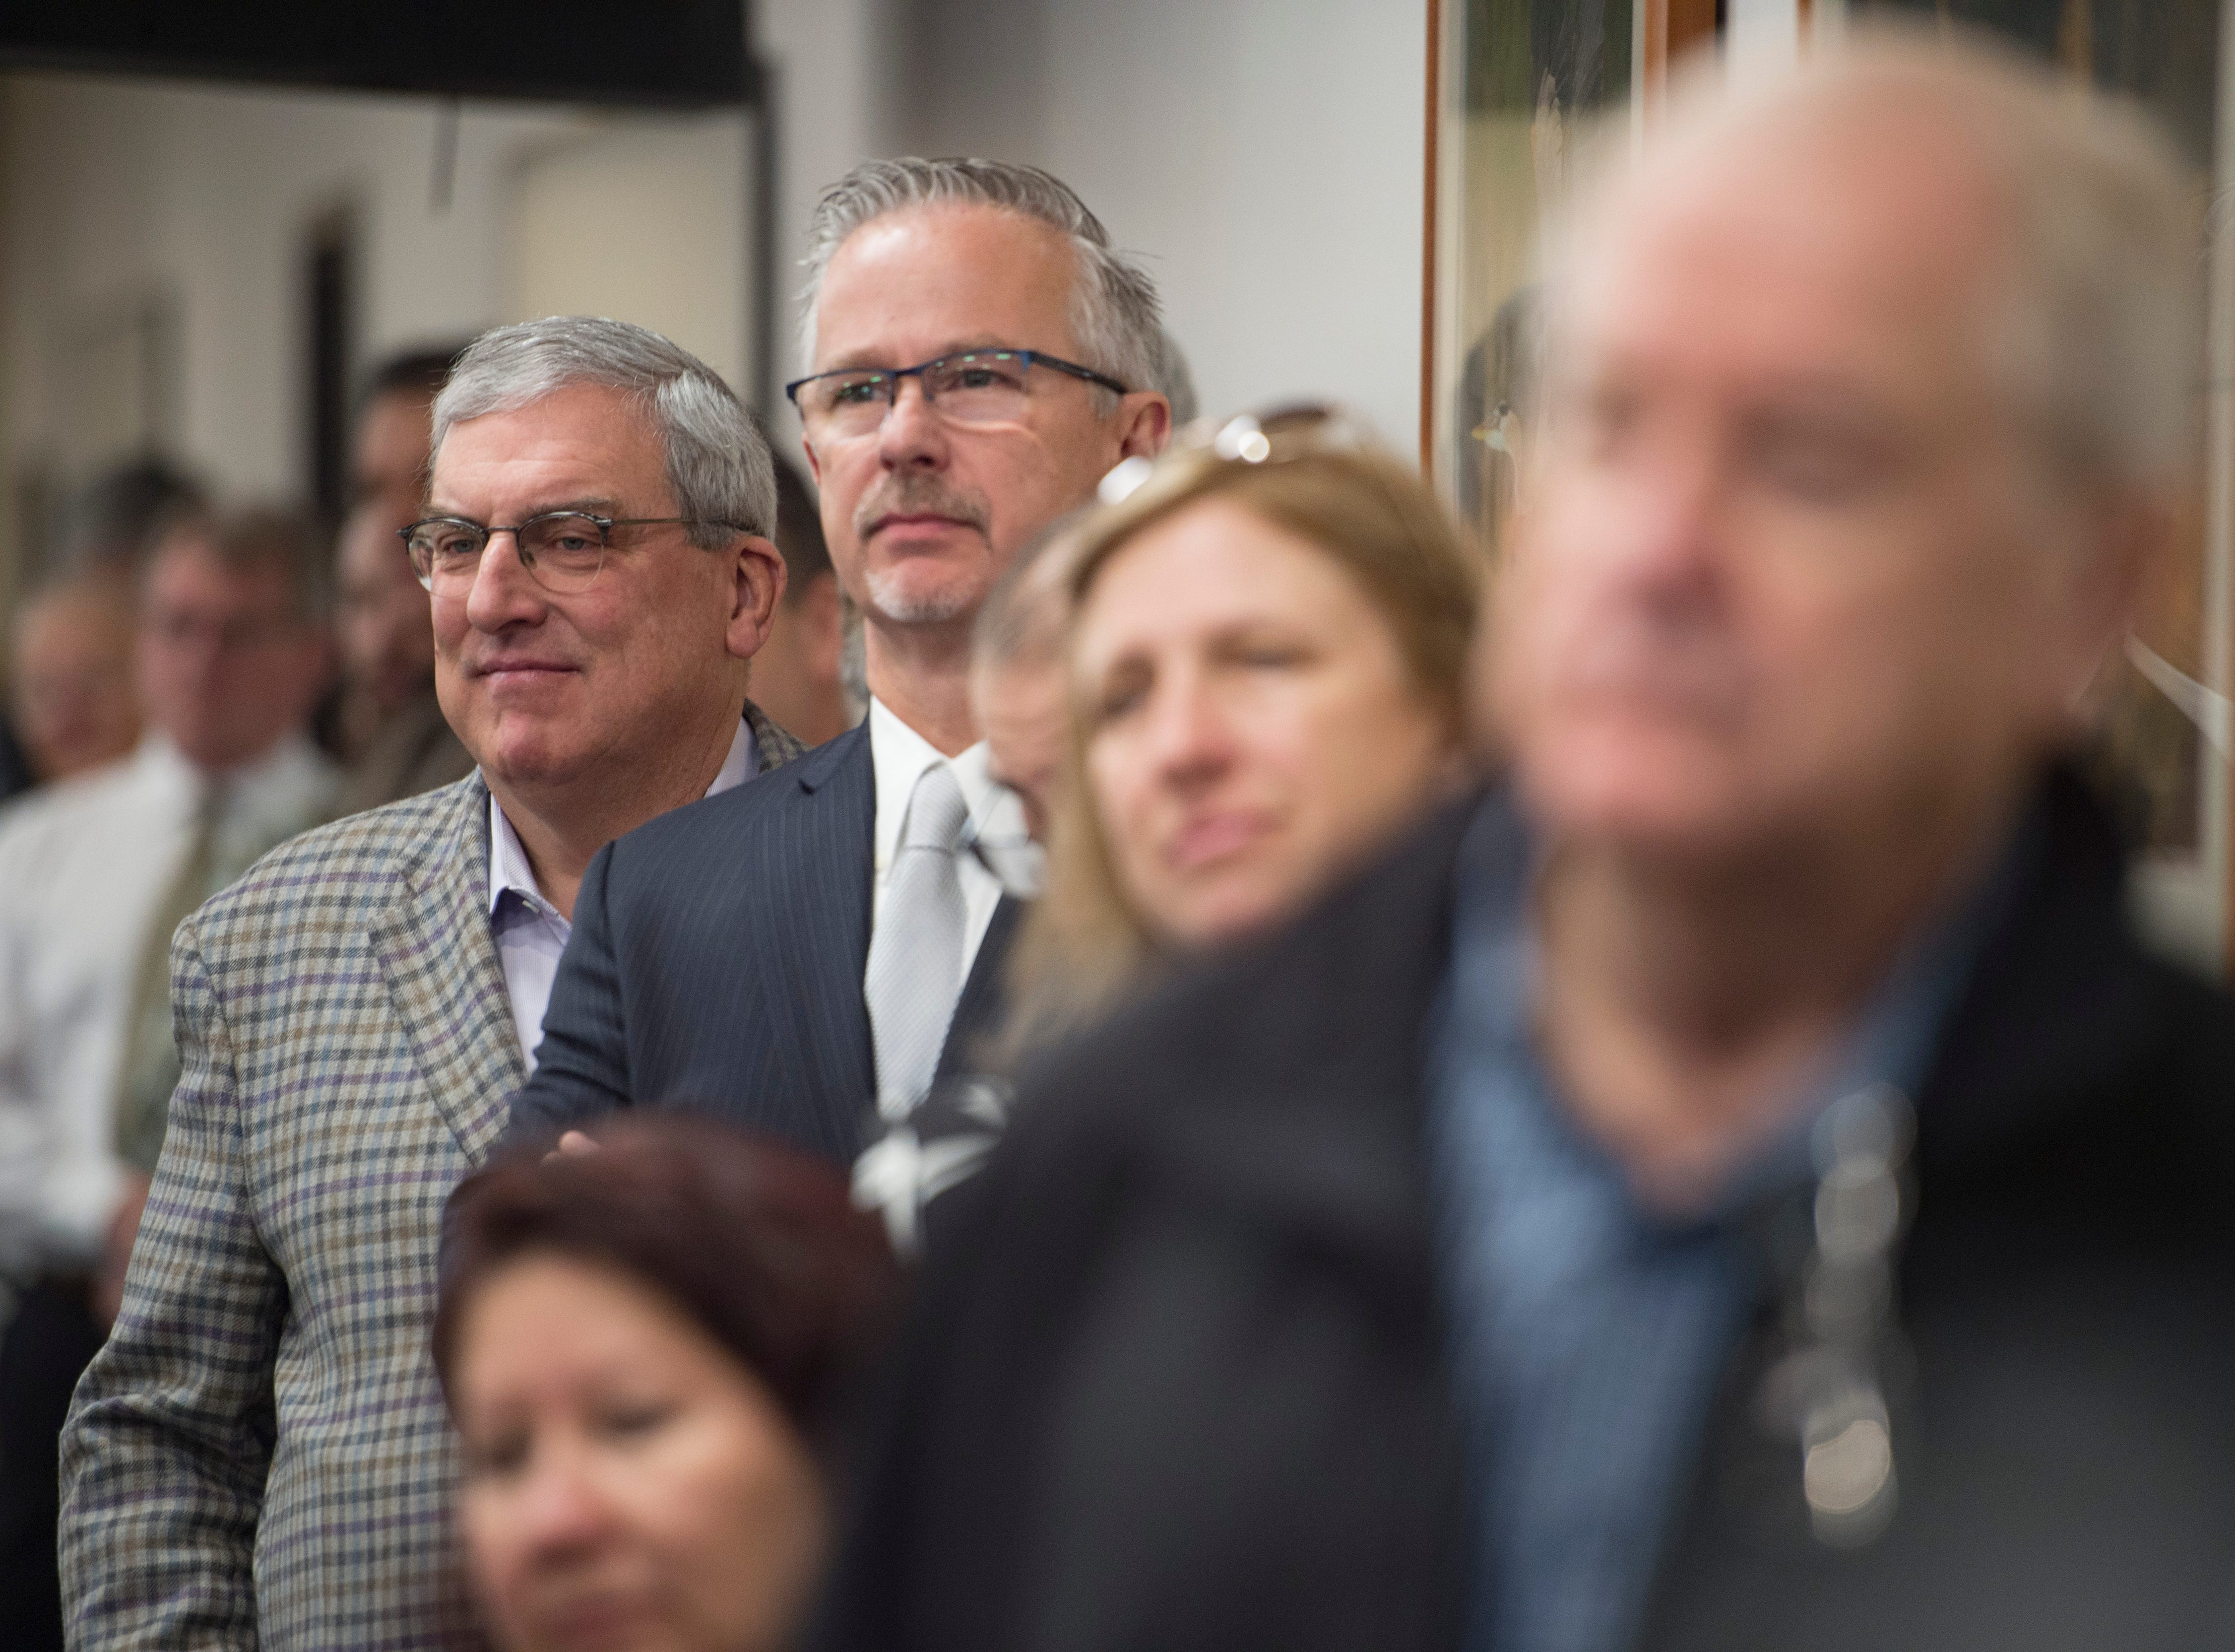 Fort Collins Mayor Wade Troxell watches as elected officials are sworn in at the Larimer County Courthouse on Tuesday, January 8, 2019.